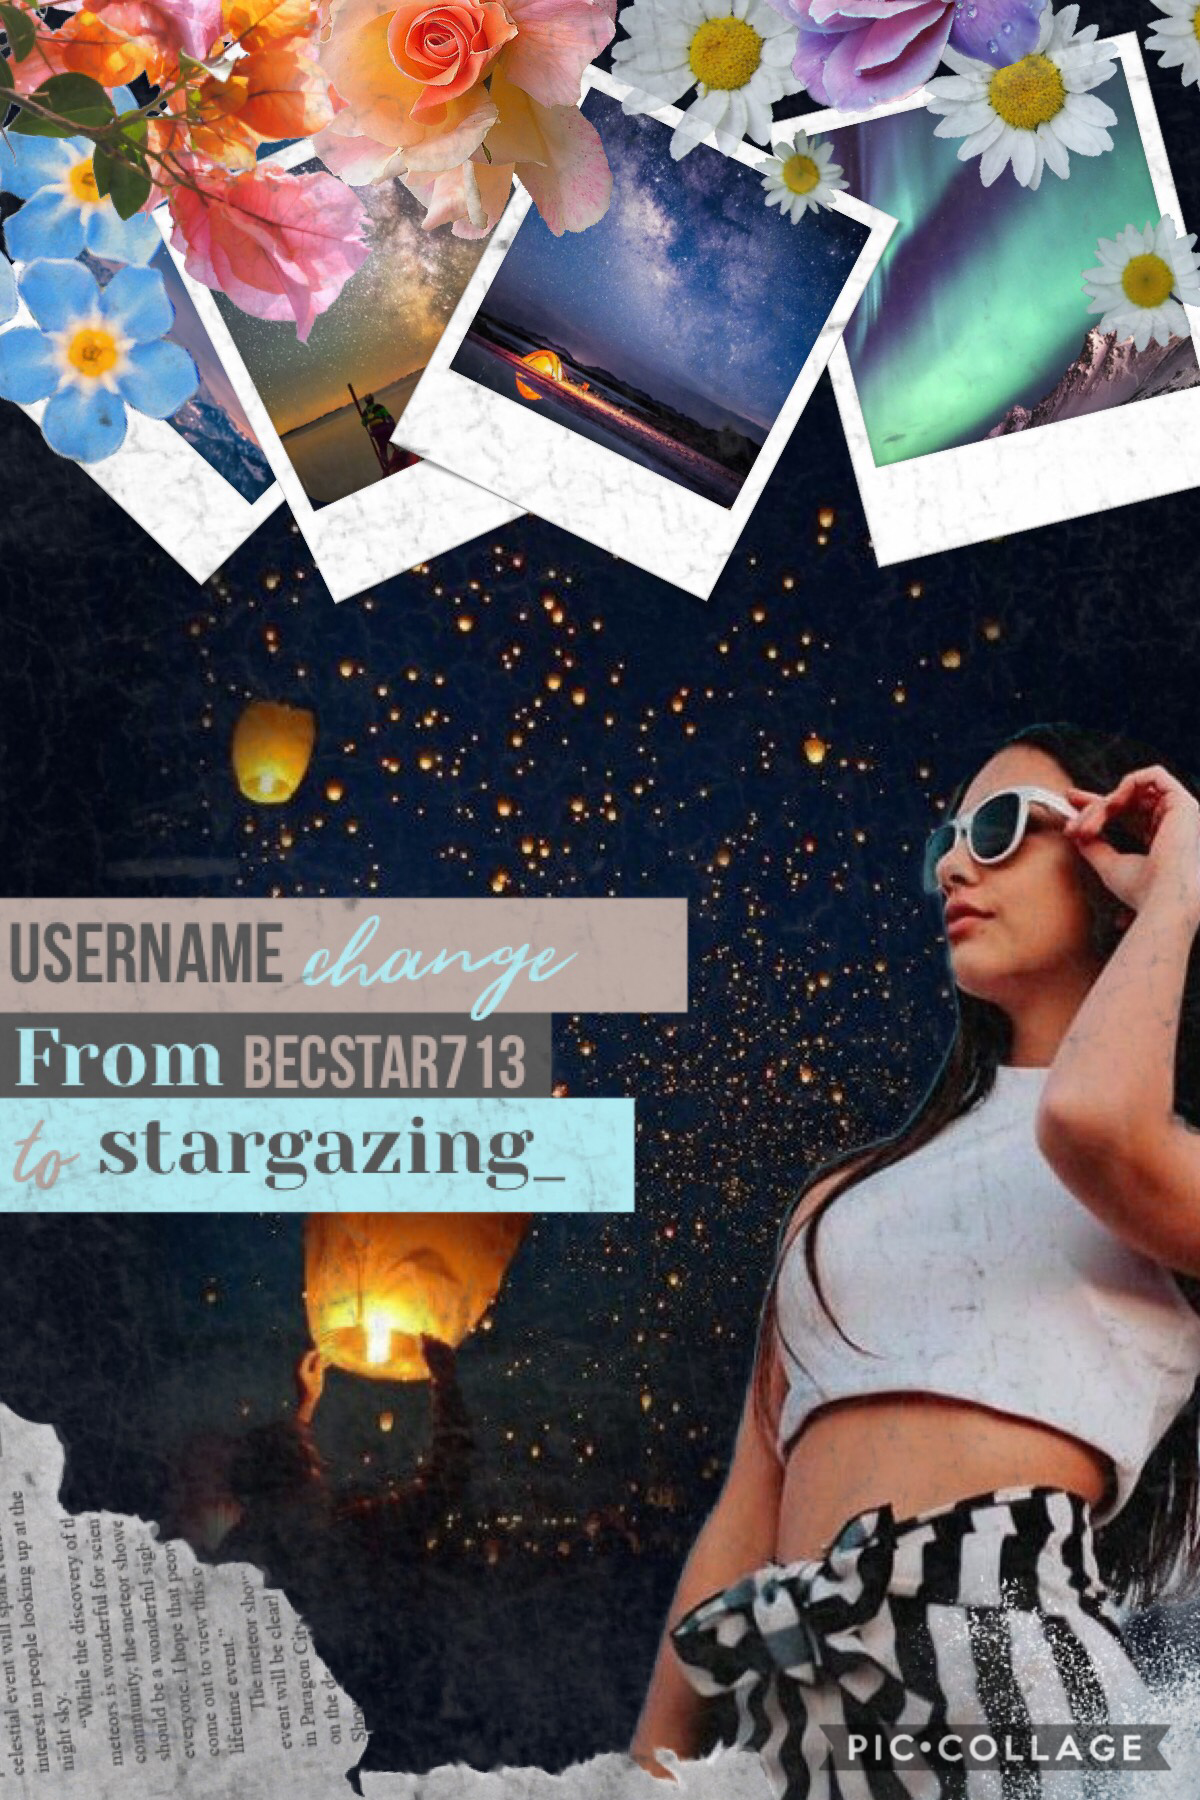 Username Change!!! TAP Becstar713 To stargazing_  I'll change my extras and follows accounts usernames soonish 💐